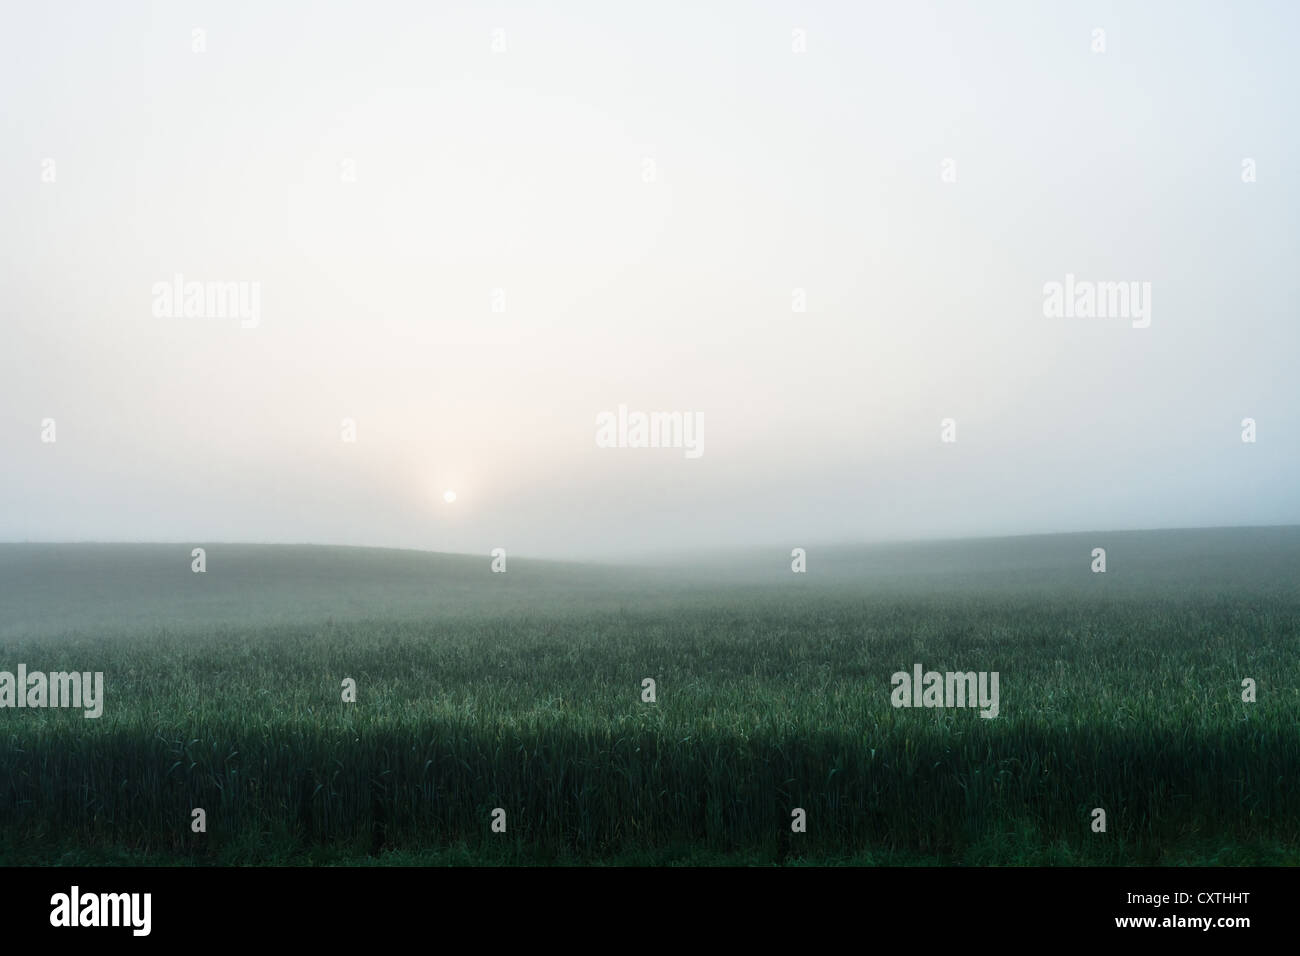 Foggy field of tall grass - Stock Image